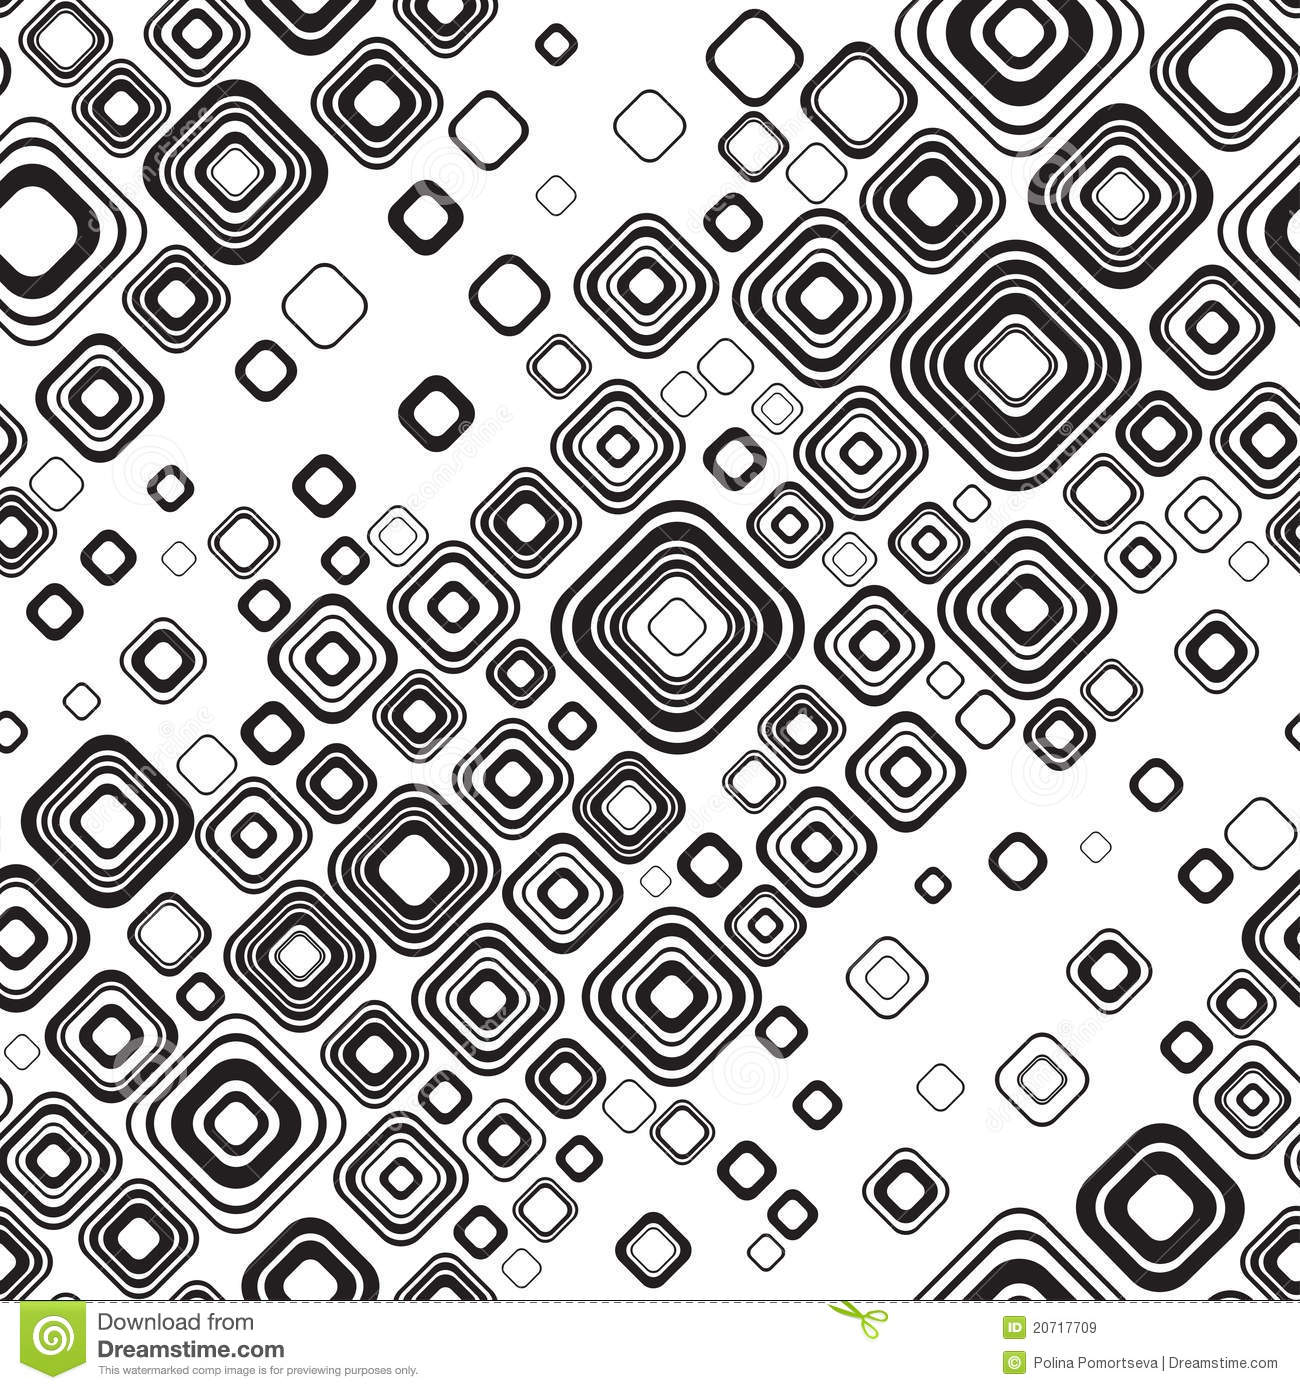 14 Black And White Seamless Pattern Design Images